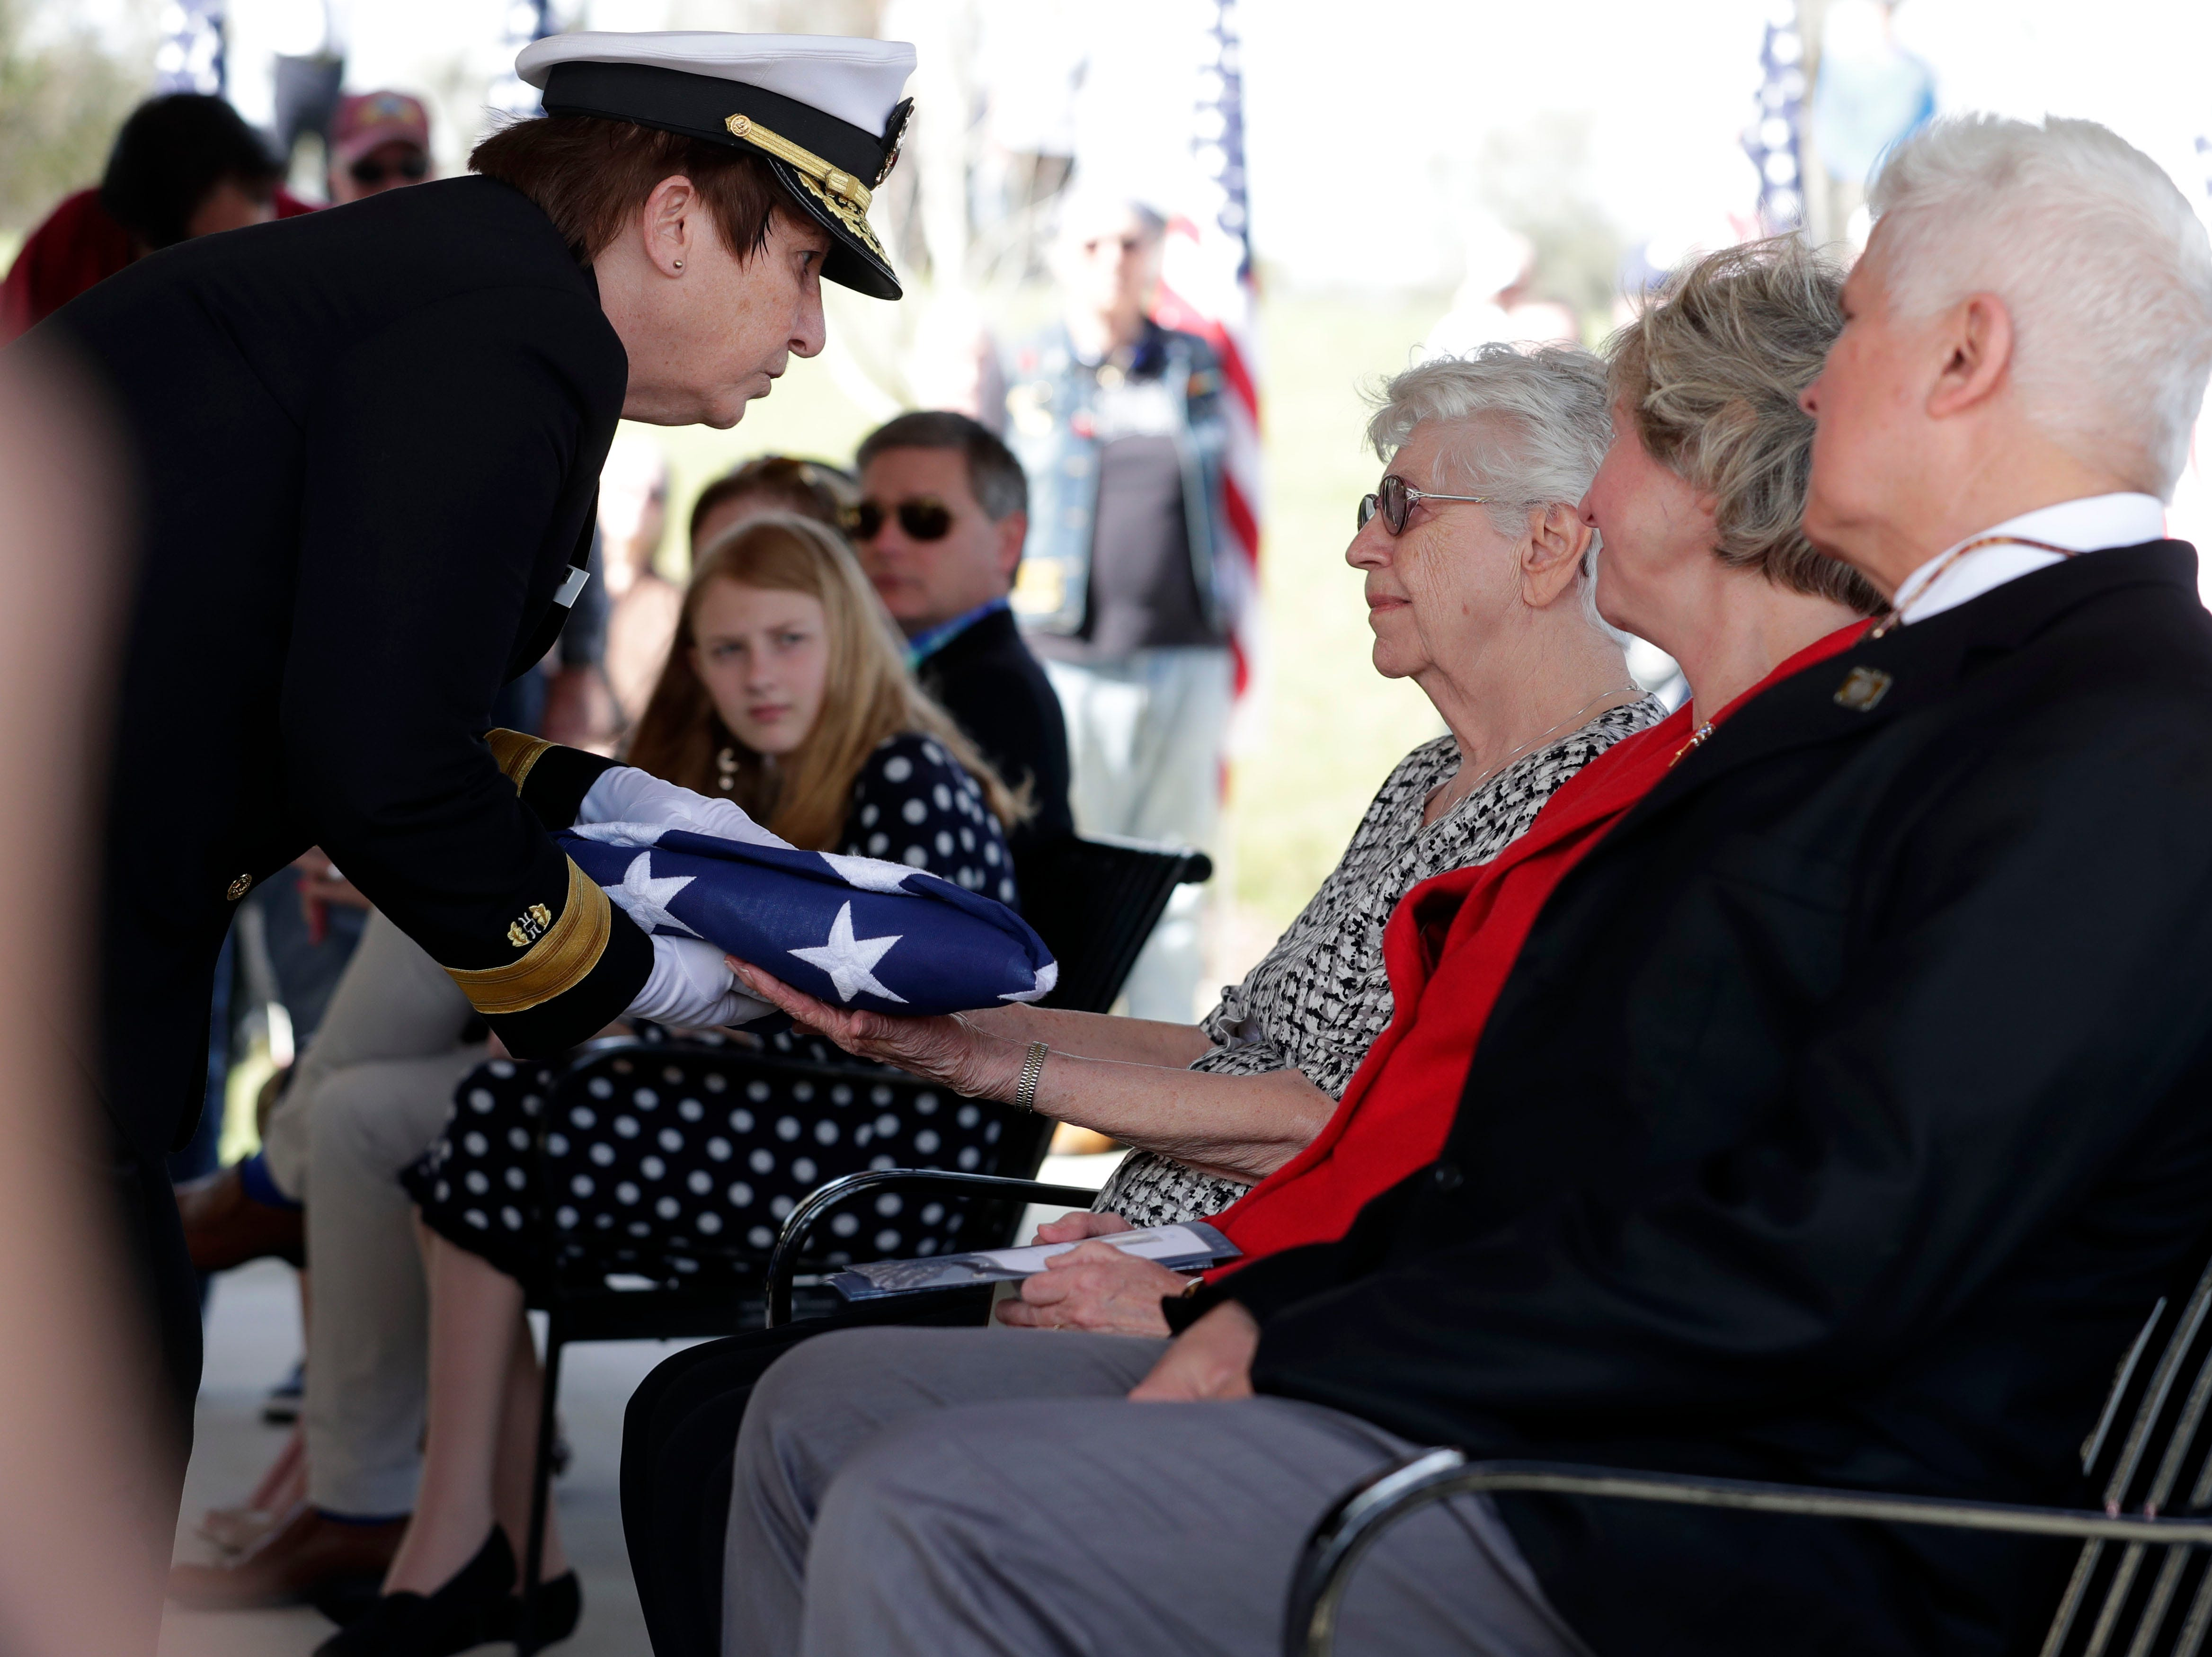 Emily Golz, sister of Earl Paul Baum, a sailor who was killed in Pearl Harbor, right, is handed the folded flag from her brother's casket. A funeral was held at the Tallahassee National Cemetery honoring Baum Friday, March 8, 2019.